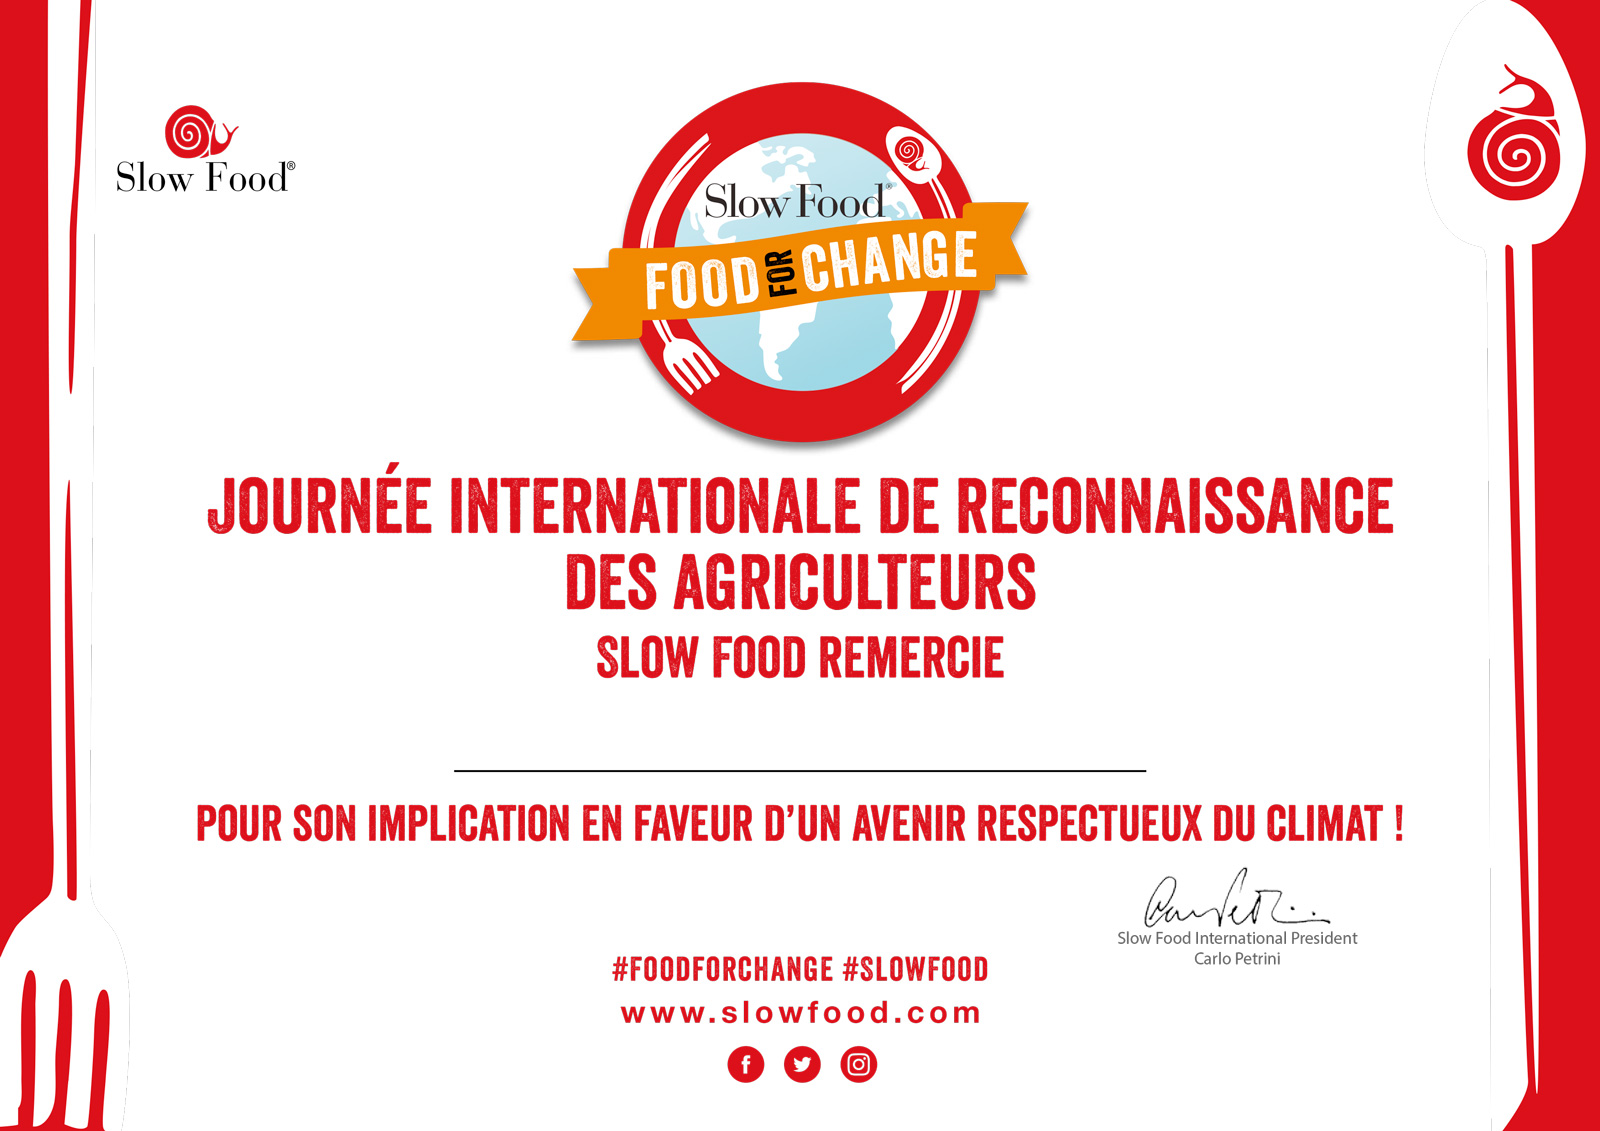 Slowfood campagne slow food climat alimentation food for change merci agriculteurs 1600x1131 2